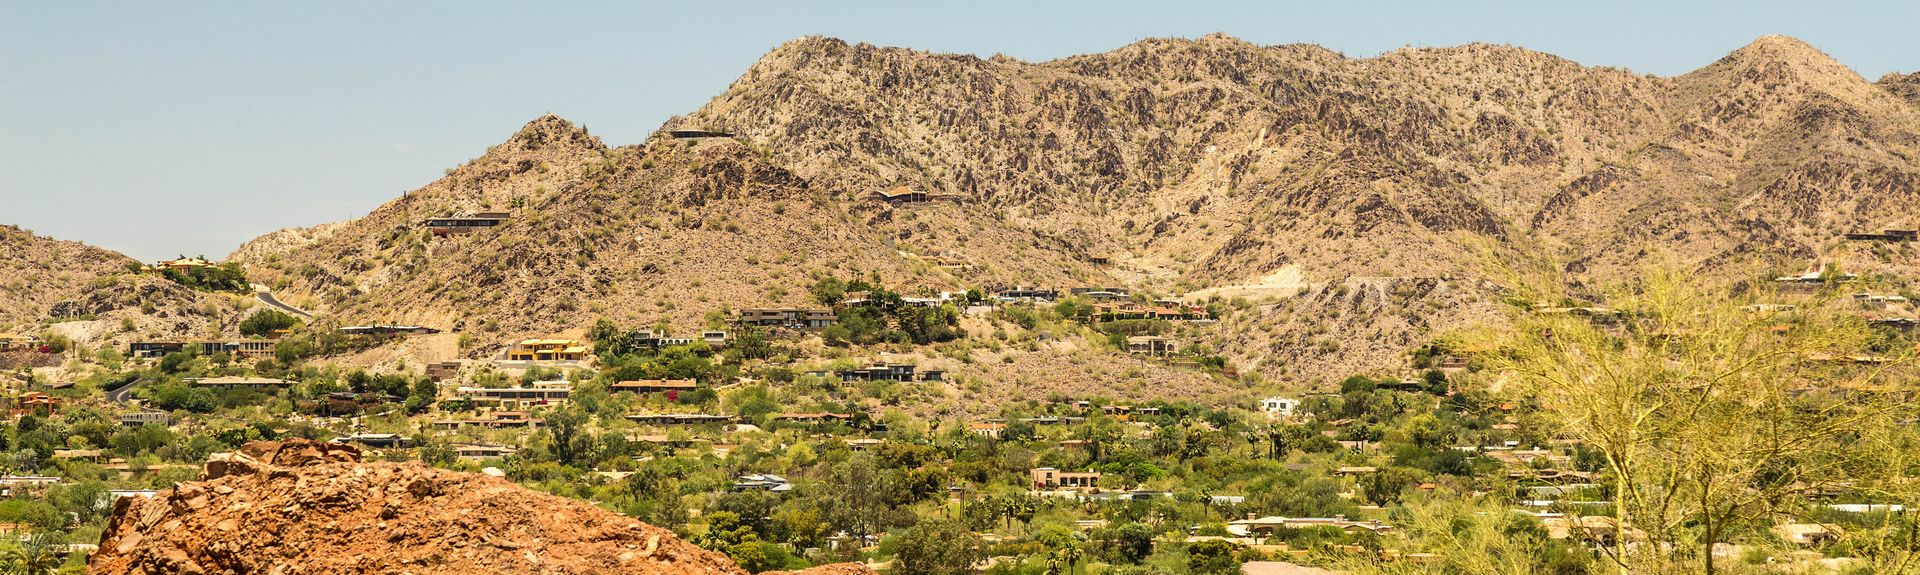 Desert Ridge, Phoenix, Arizona, Estados Unidos